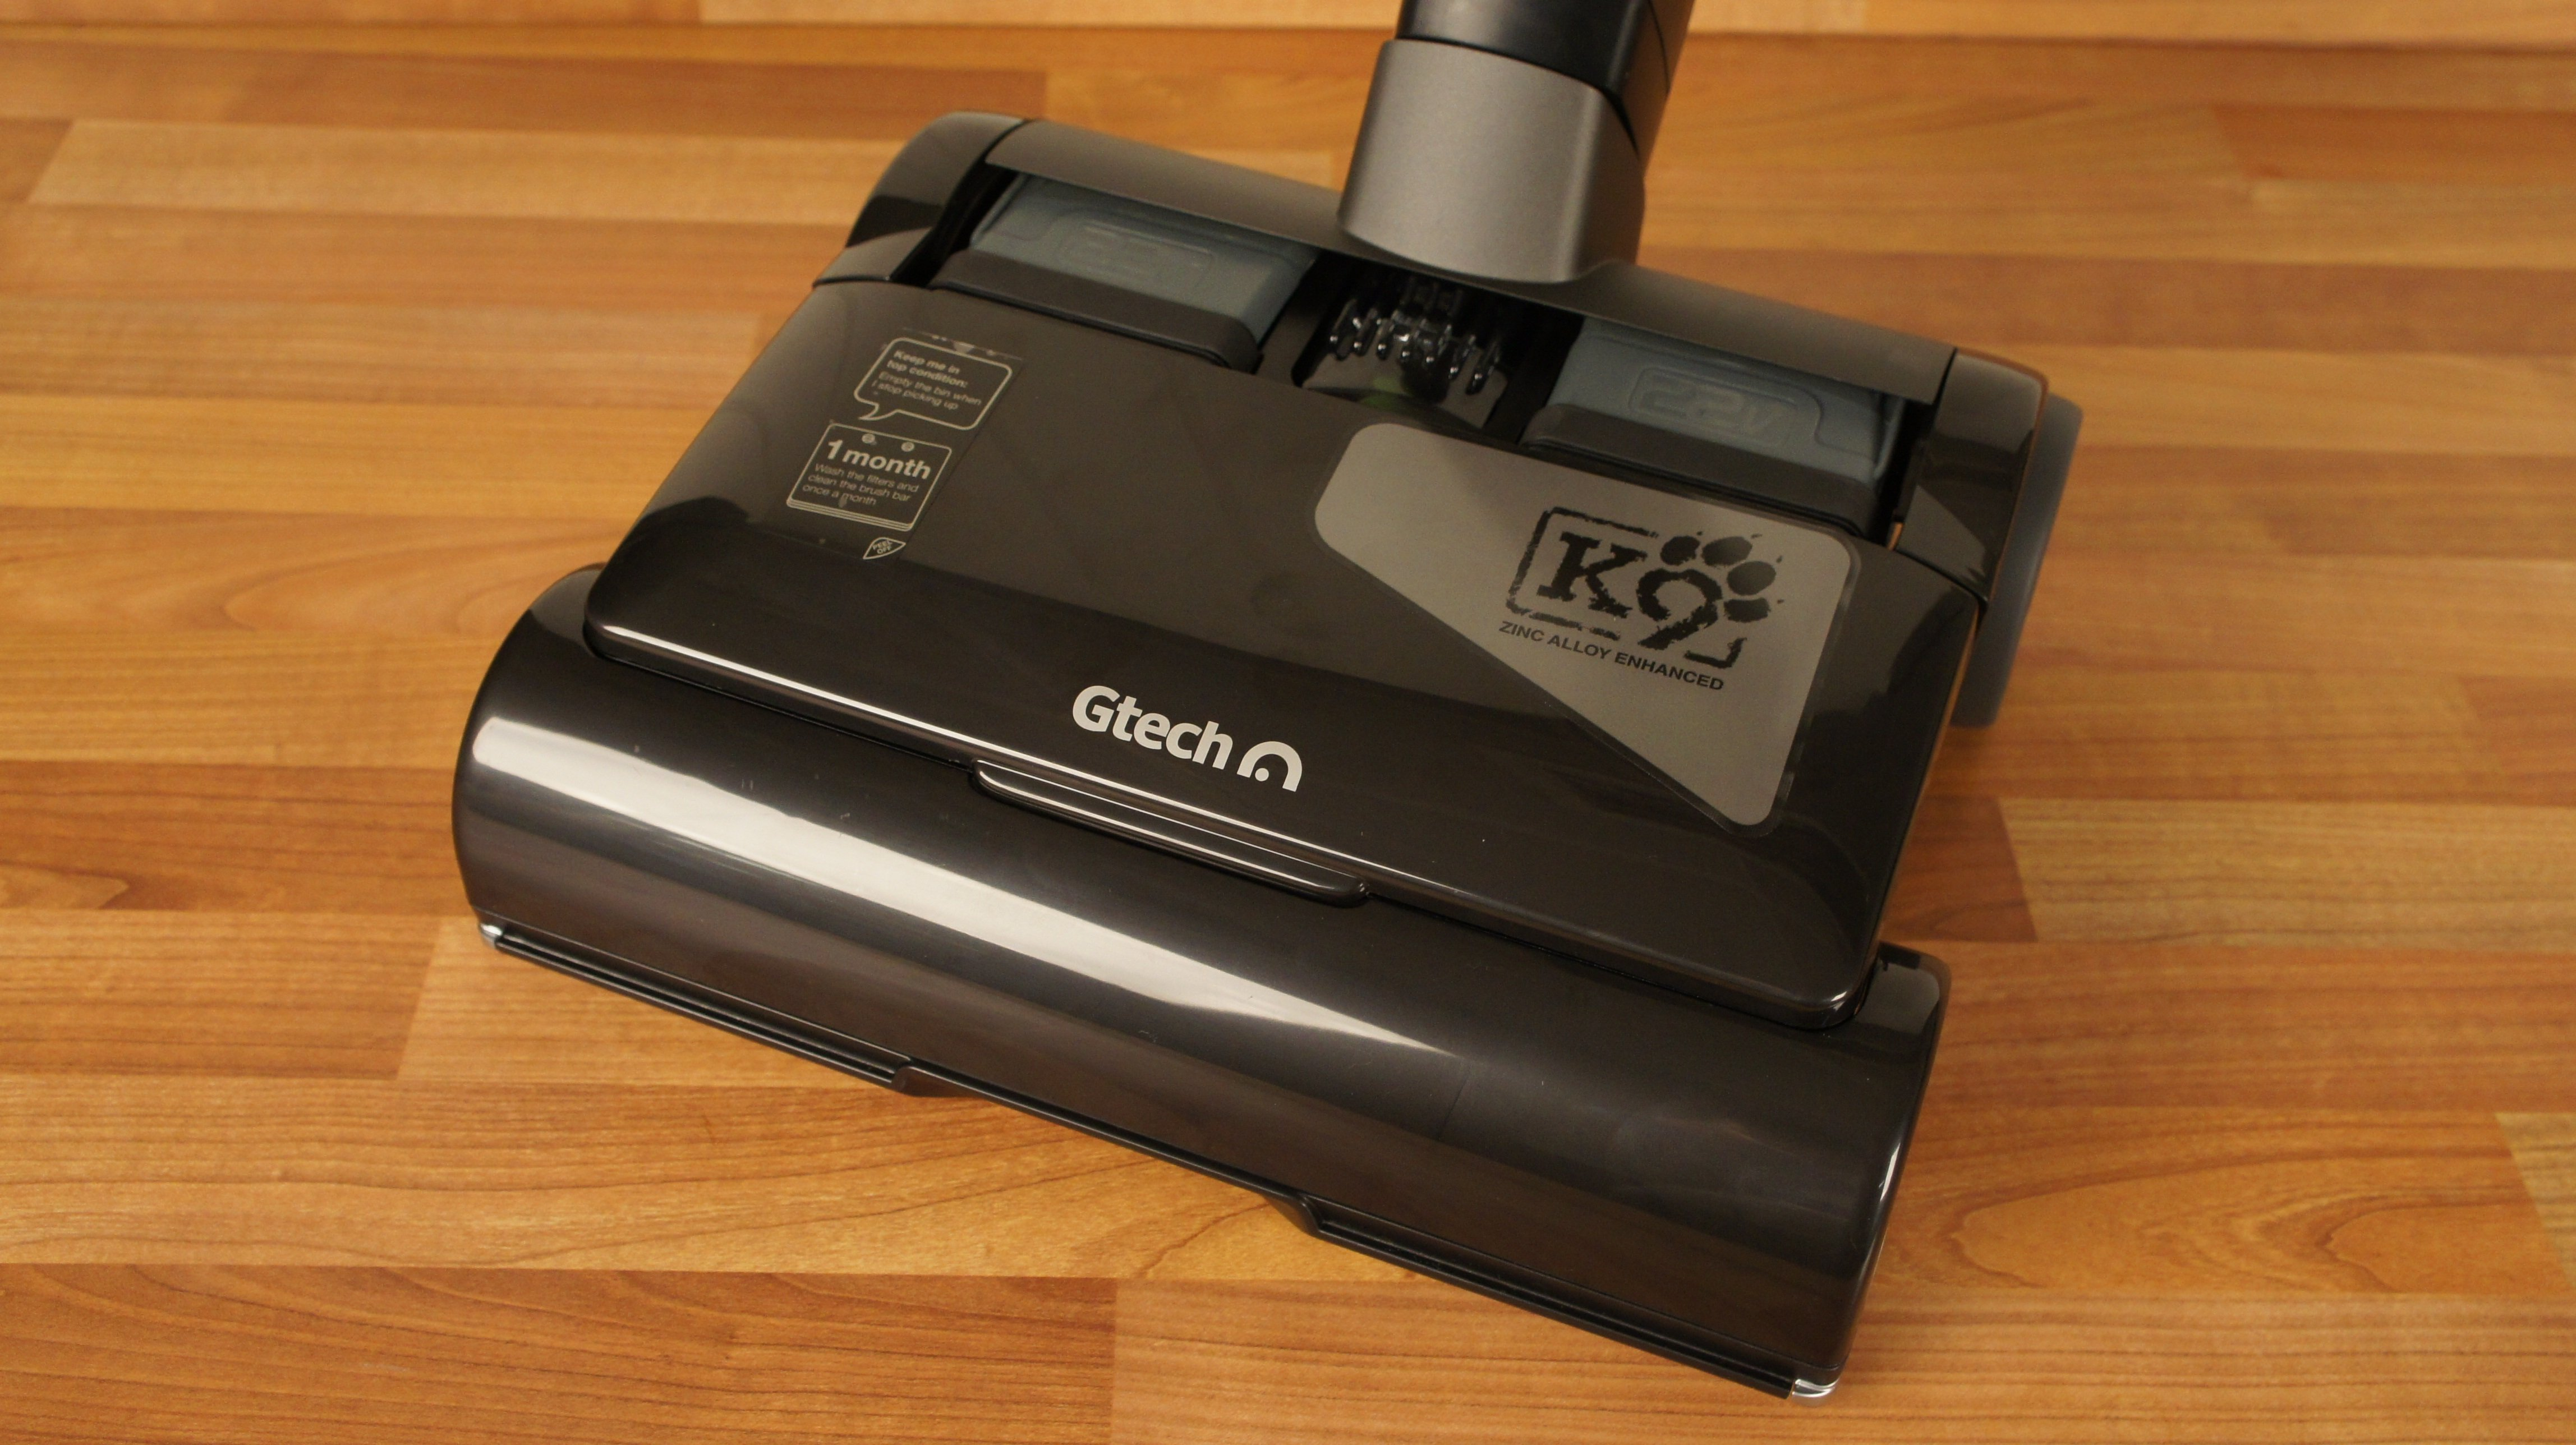 Gtech Airram K9 Review The Cordless Vacuum Cleaner That